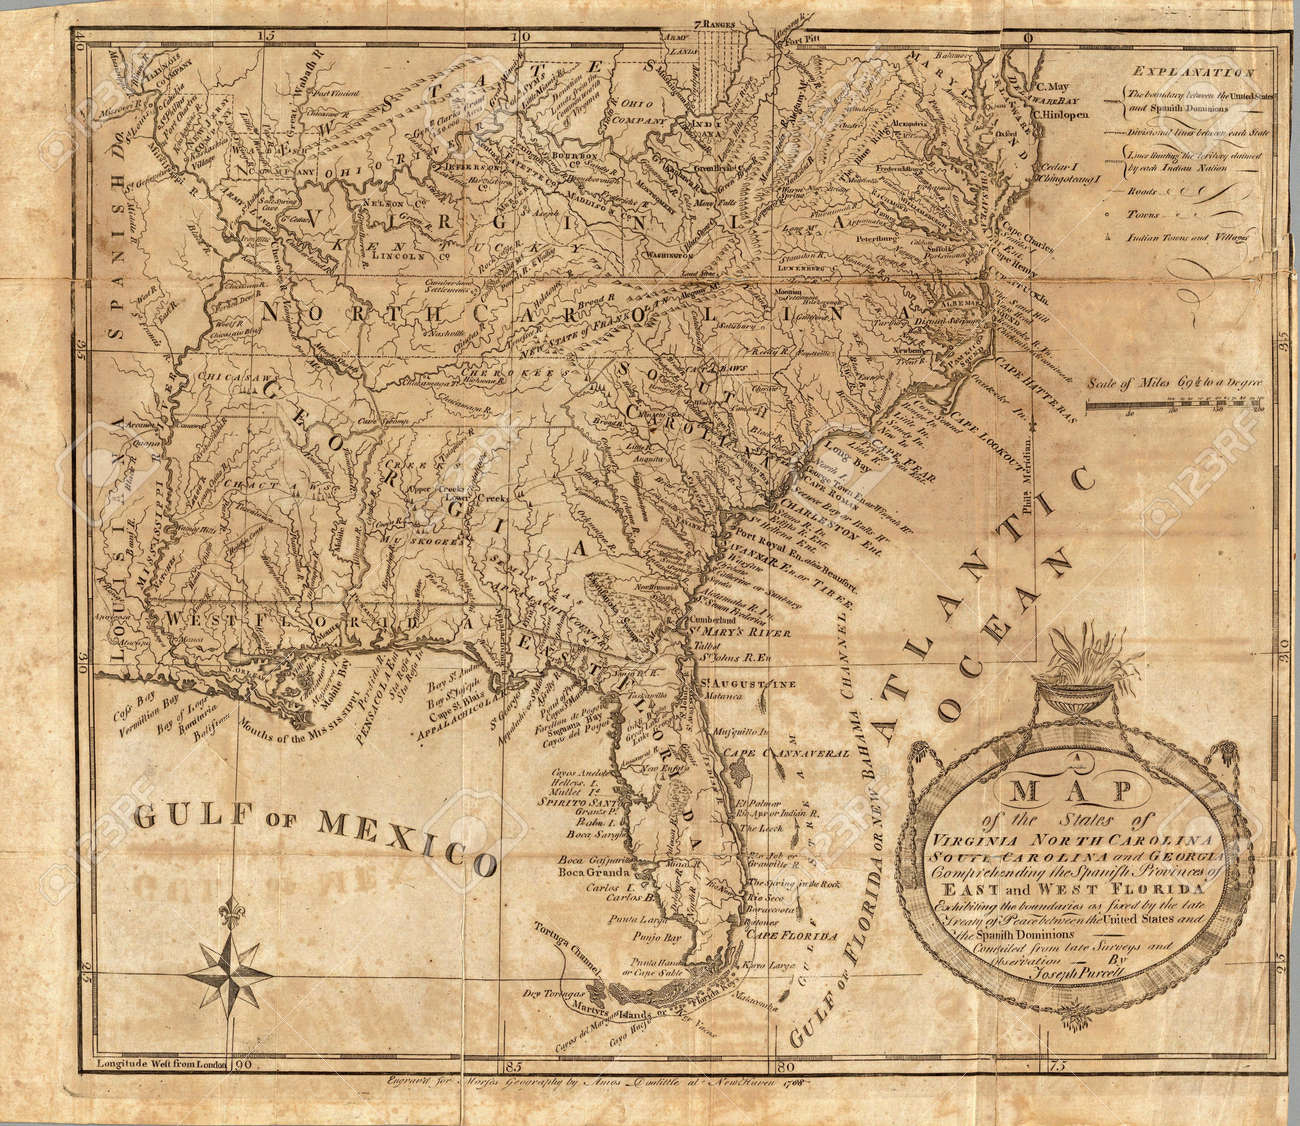 America  Old Map Stock Photo Picture And Royalty Free Image - Old maps of america